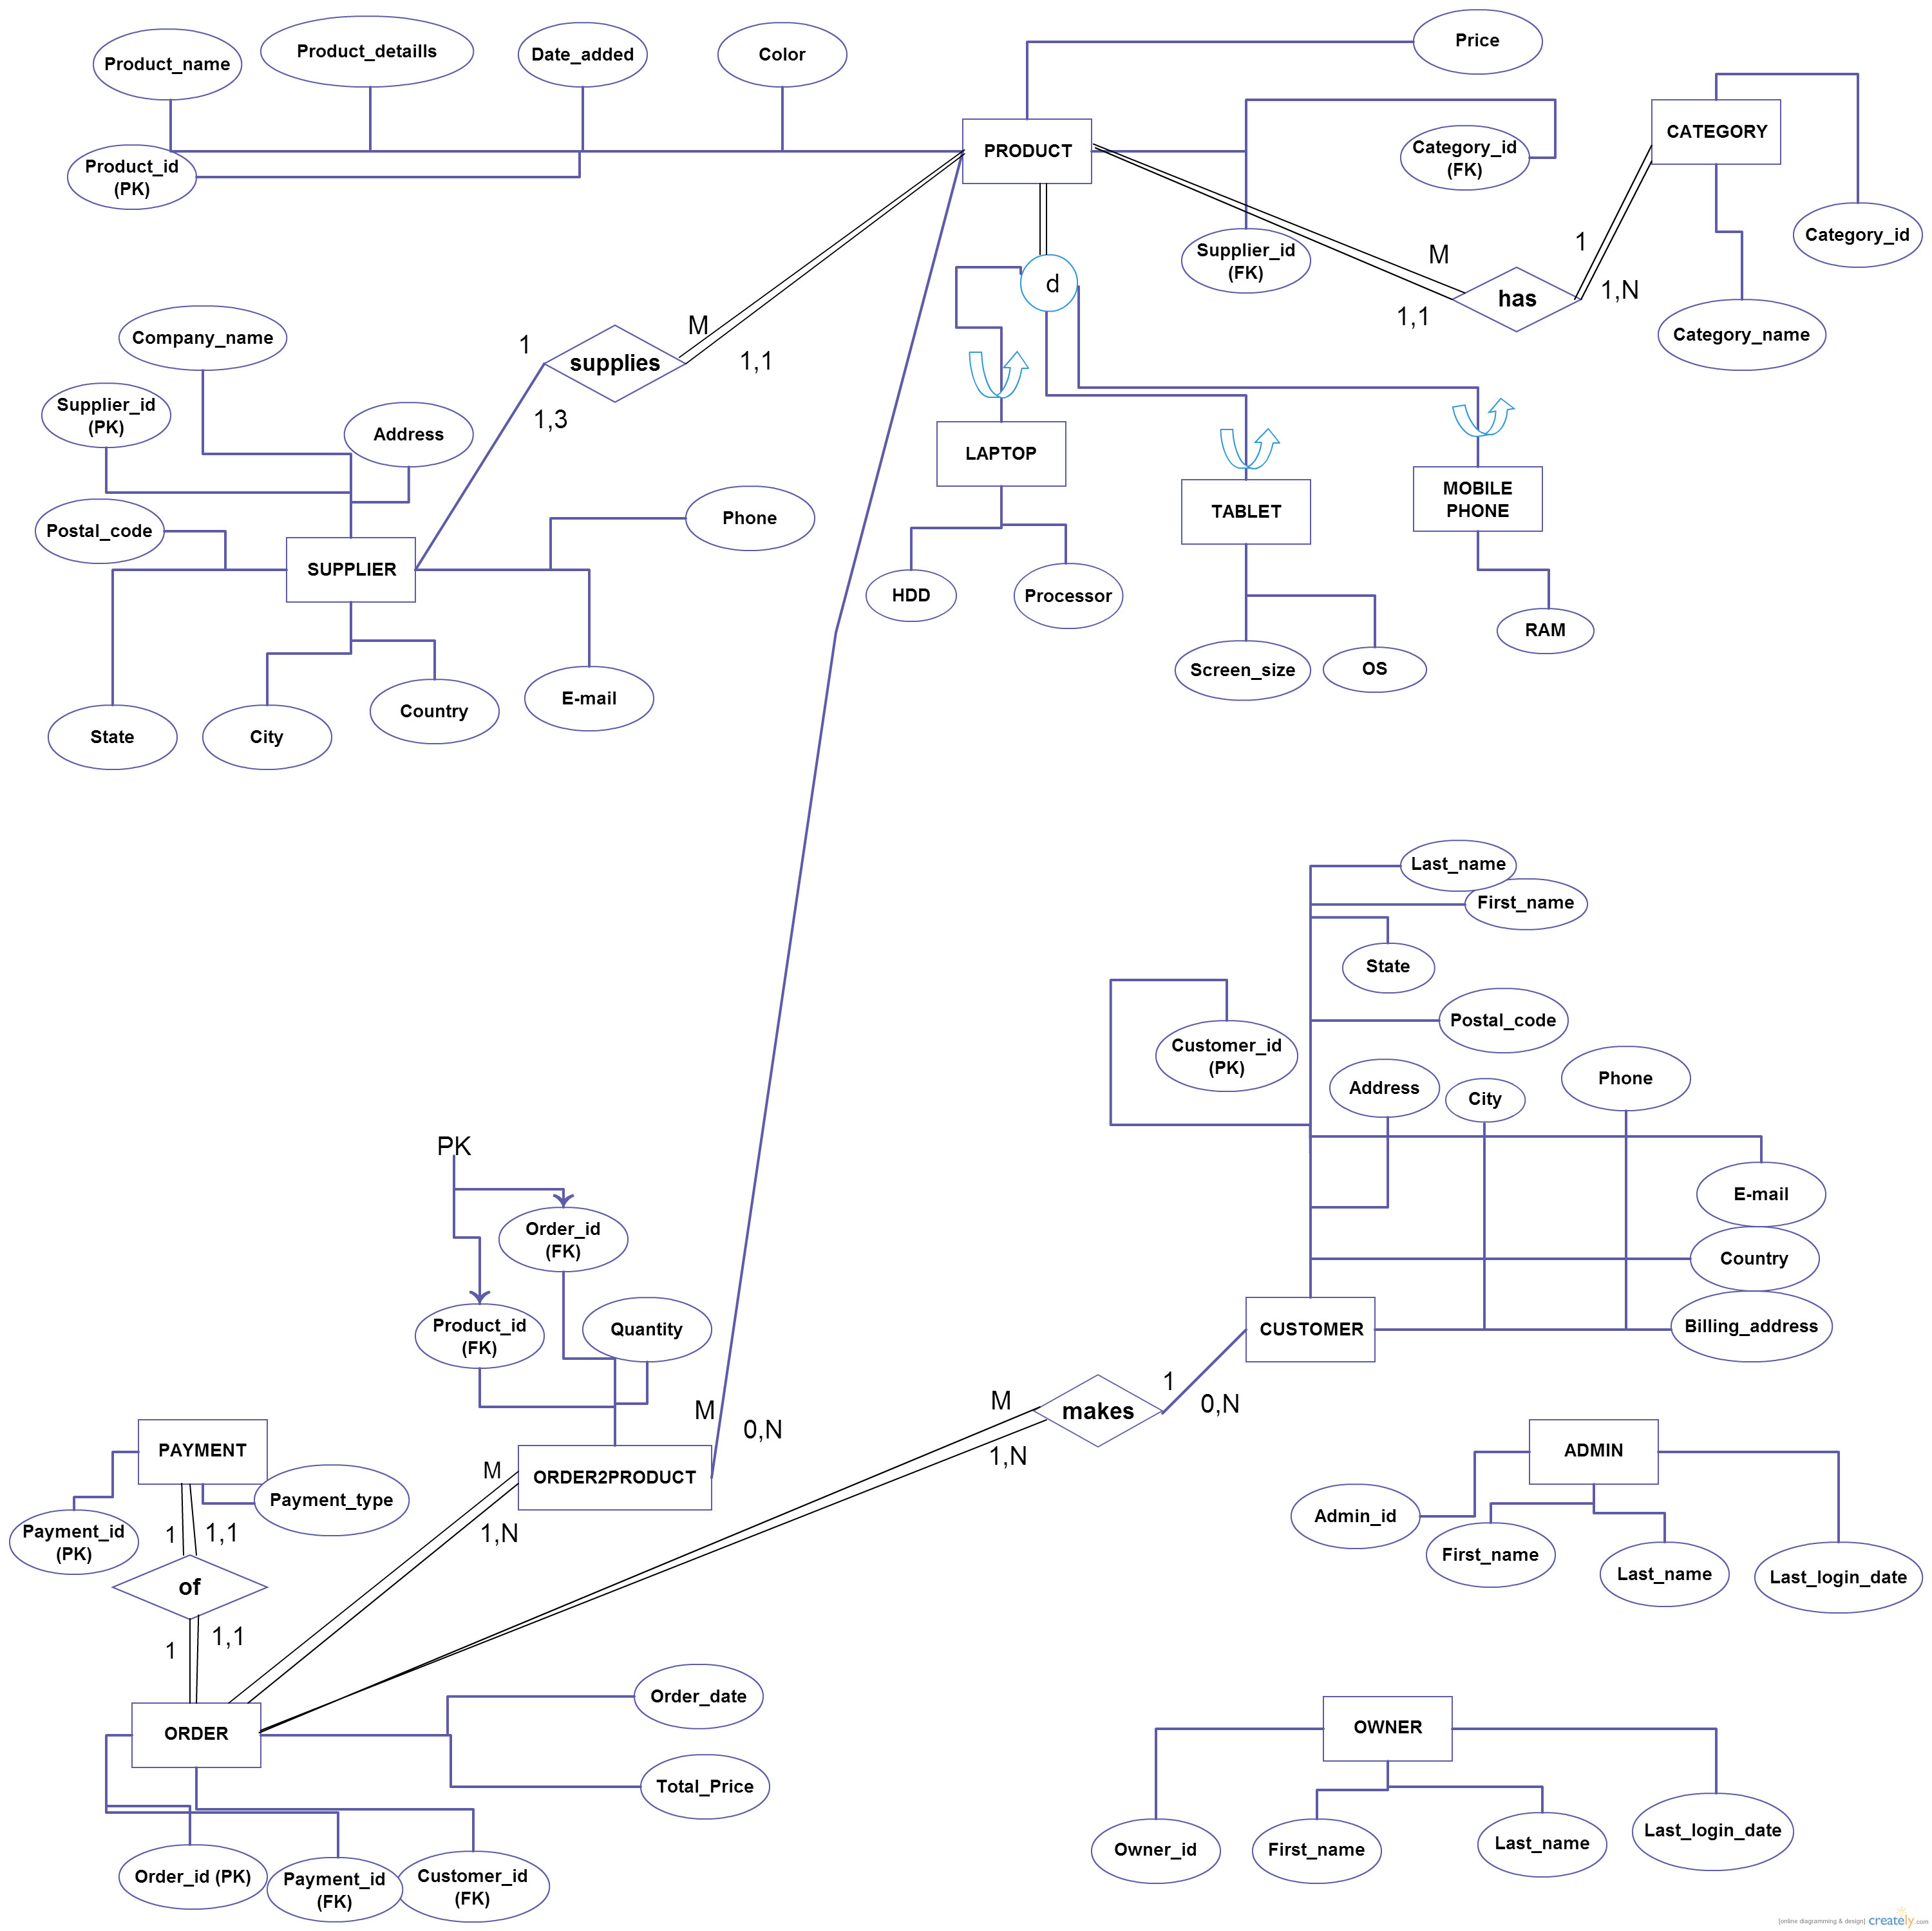 Does This E-R/eer Diagram Contain Correct Relationships And regarding Er Diagram Superclass Subclass